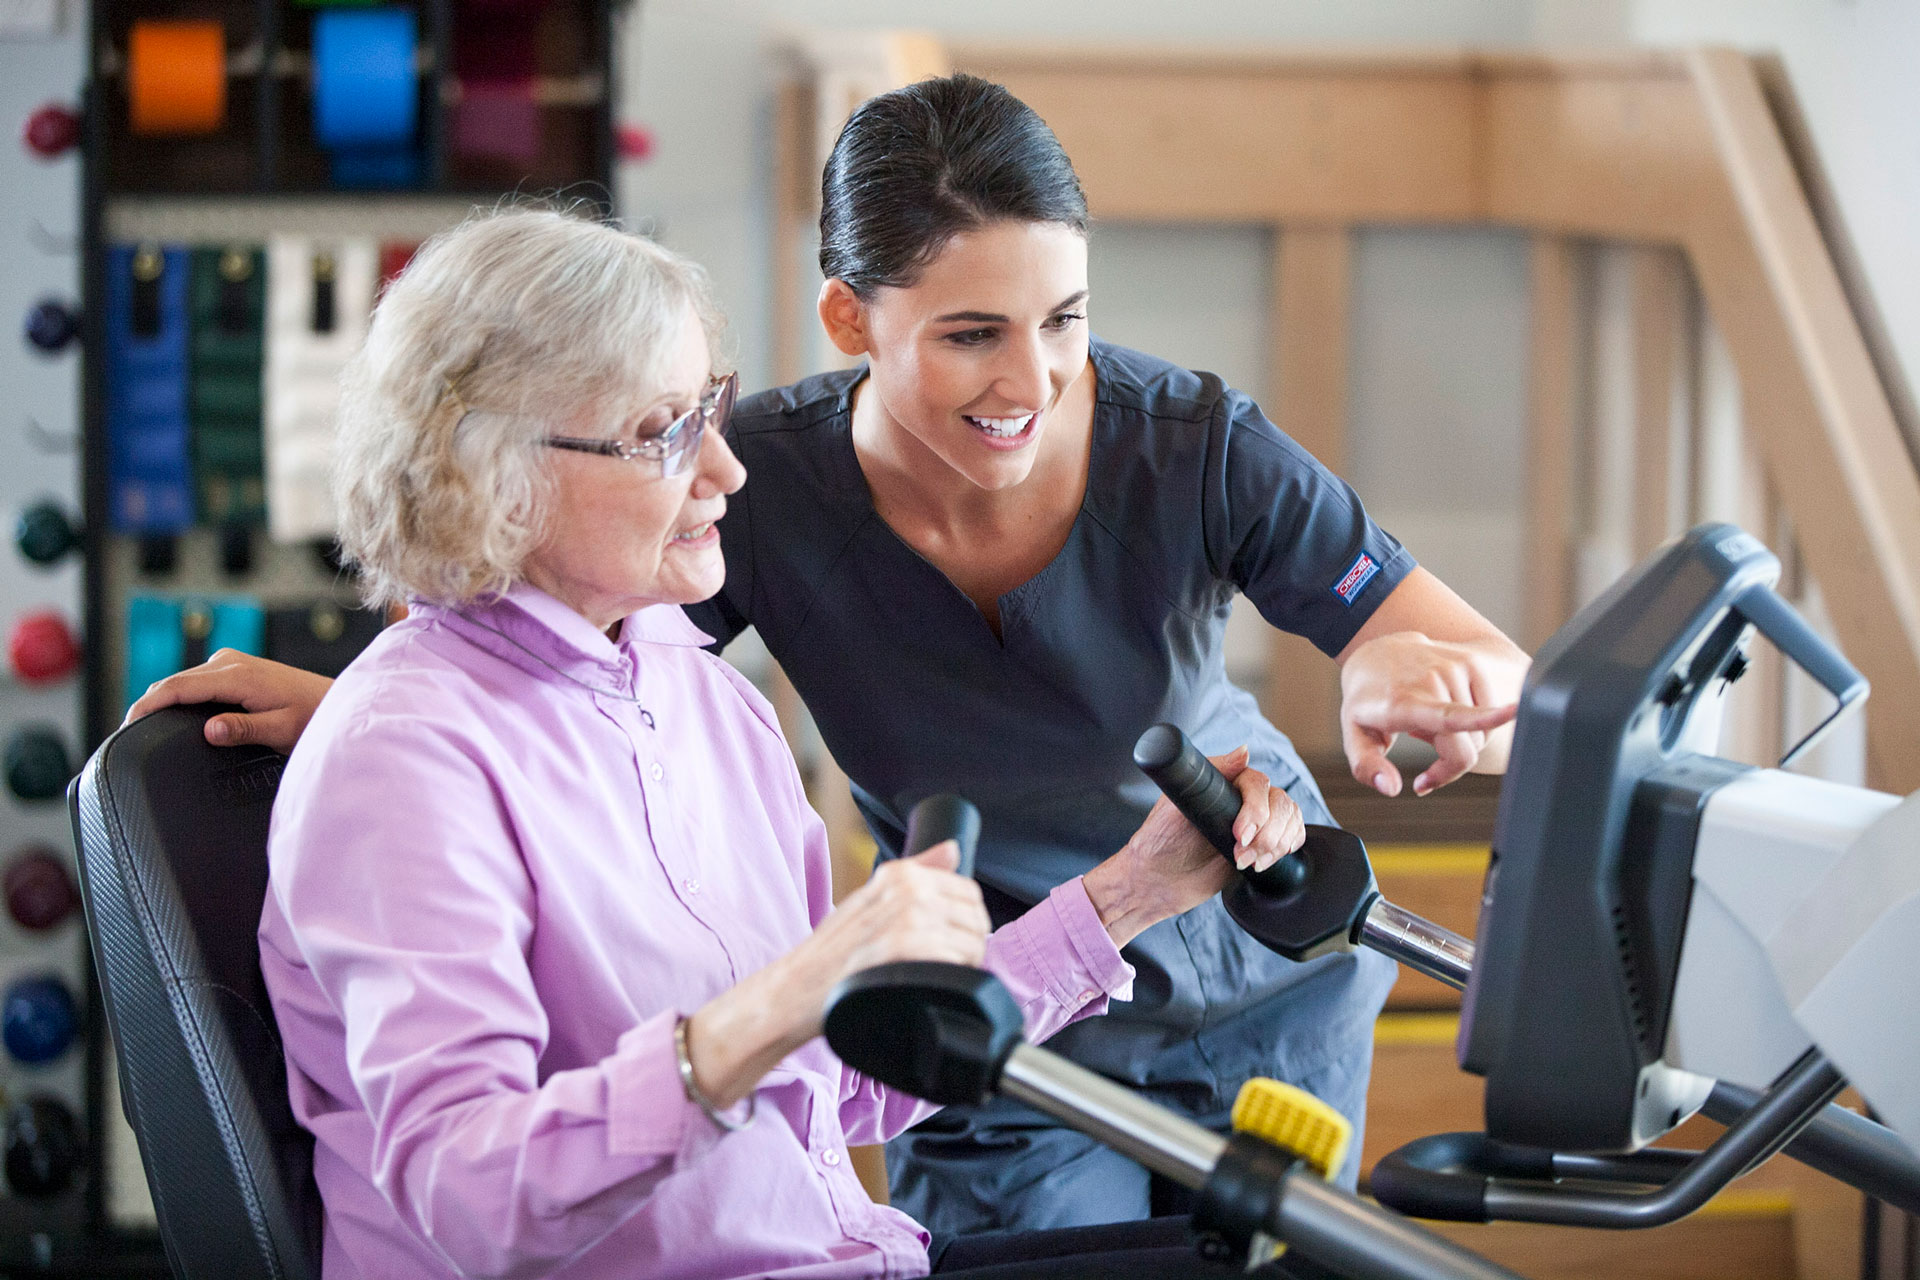 Physical therapist helping woman use equipment